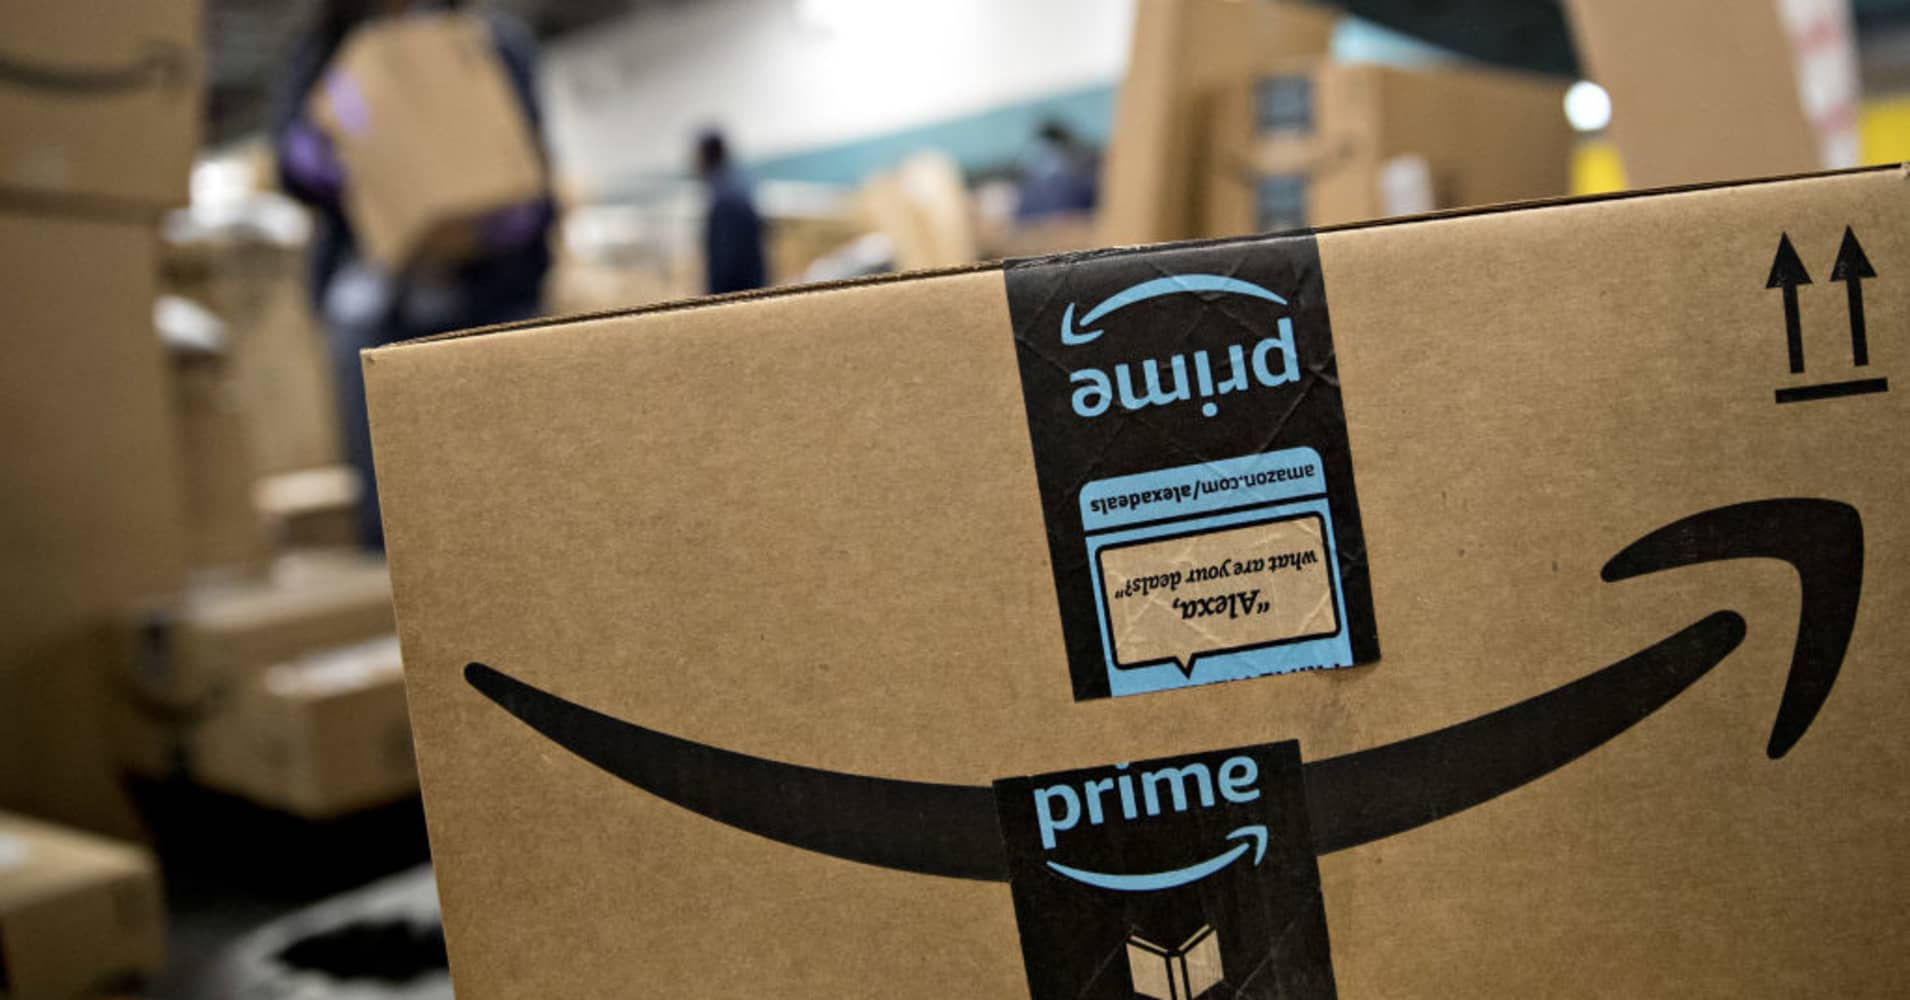 cnbc.com - Hugh Son - Two-thirds of Amazon Prime members would try banking with the retailer, according to Bain study